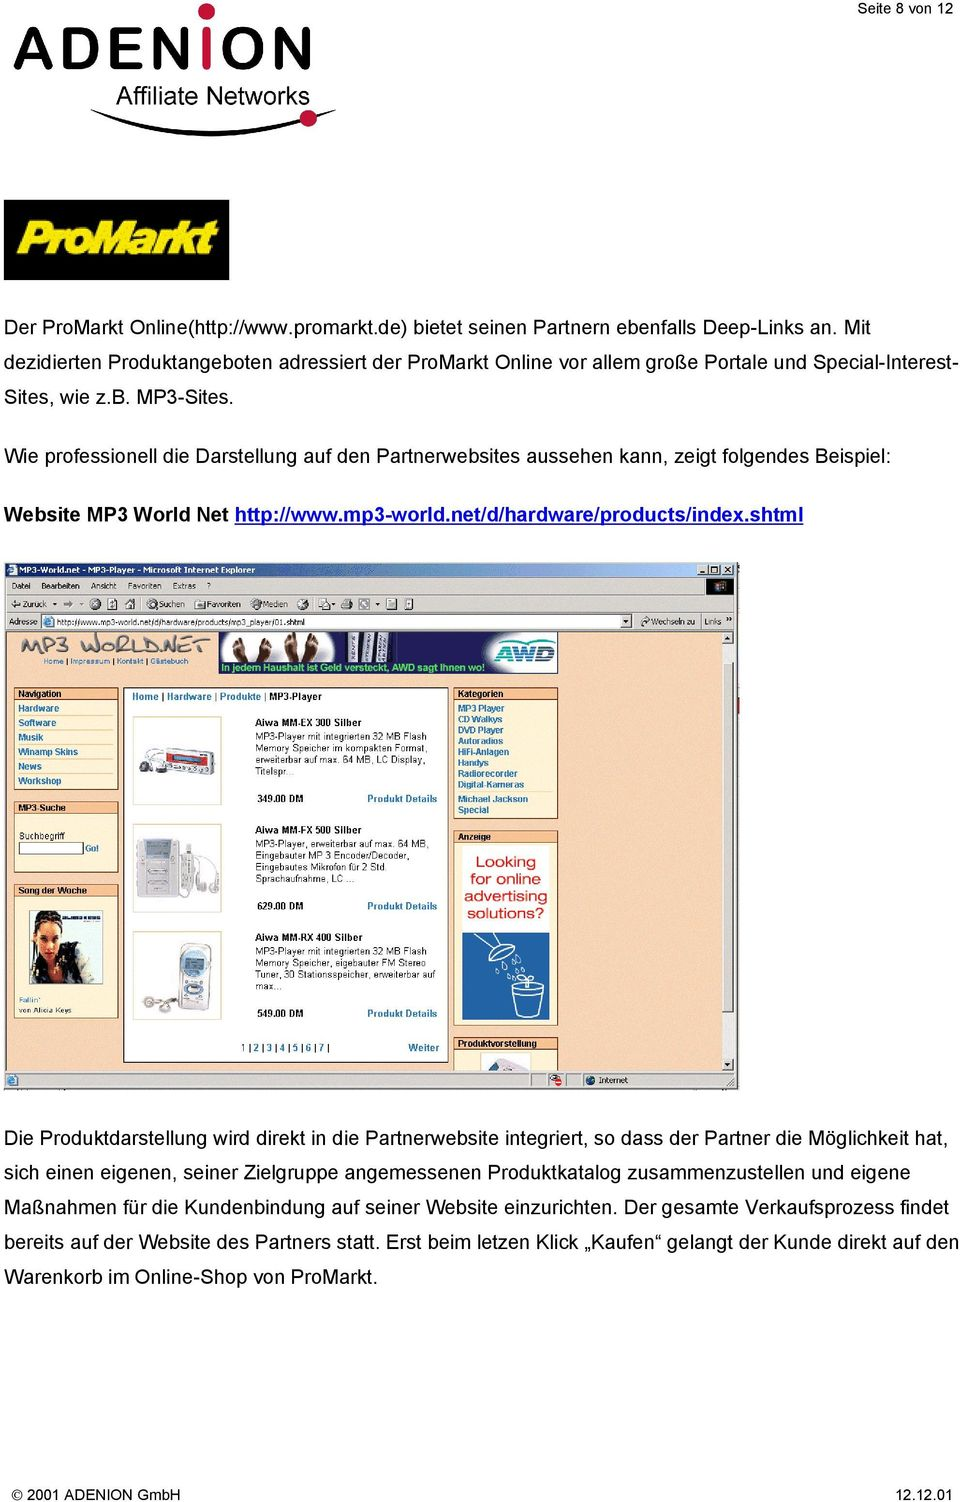 Wie professionell die Darstellung auf den Partnerwebsites aussehen kann, zeigt folgendes Beispiel: Website MP3 World Net http://www.mp3-world.net/d/hardware/products/index.